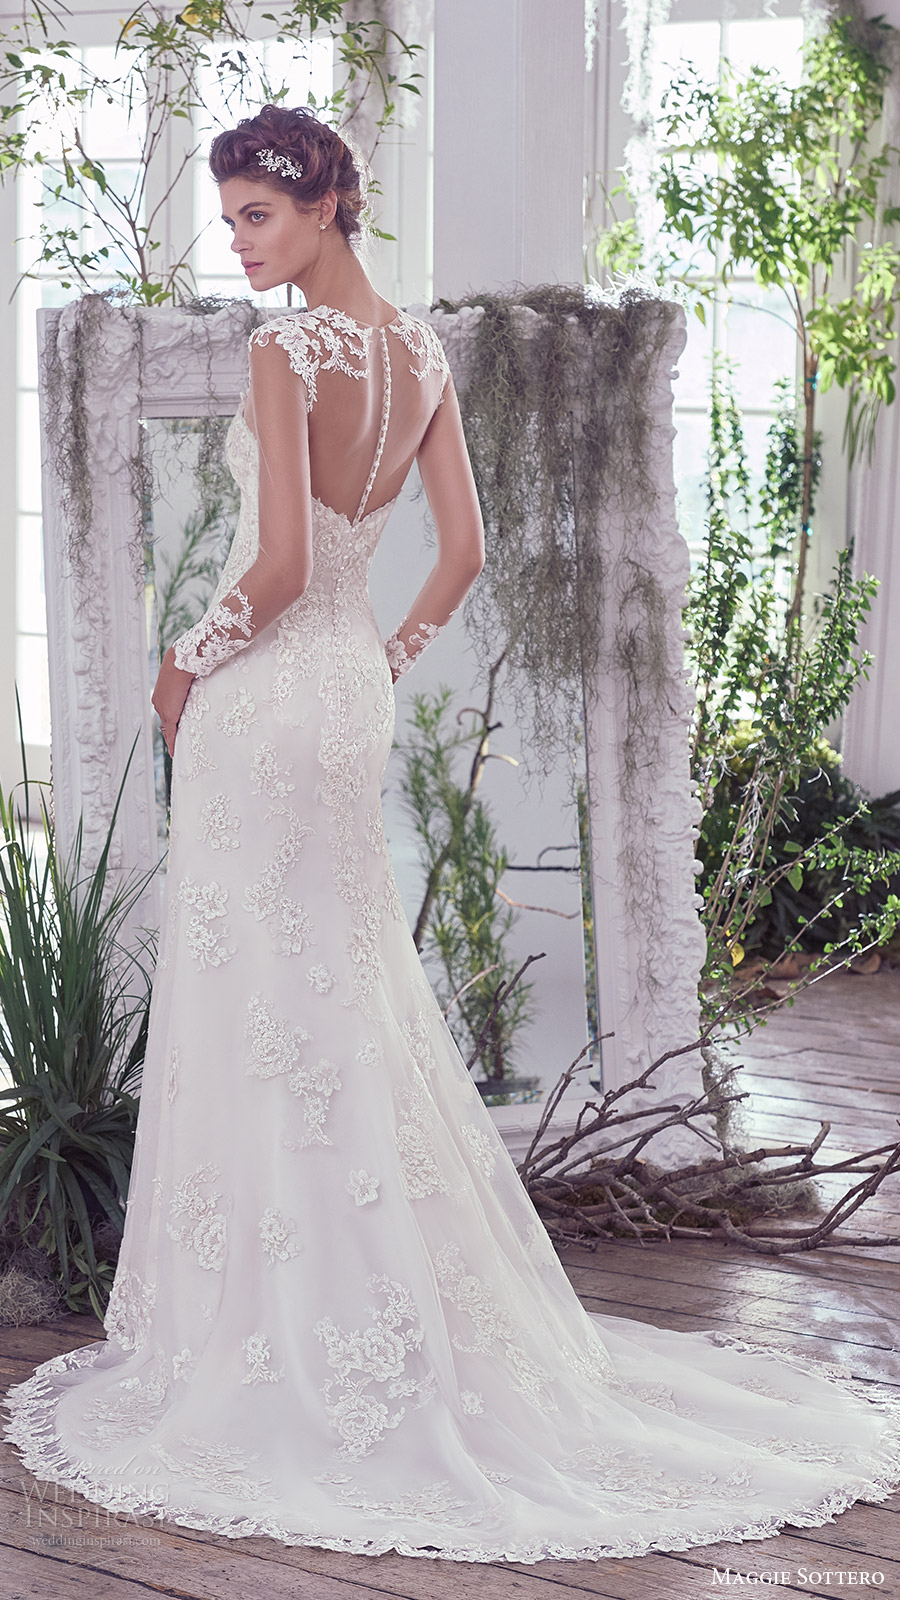 maggie sottero bridal fall 2016 long sleeves sweetheart illusion jewel neck lace sheath wedding dress (rosaleigh) bv sheer back train